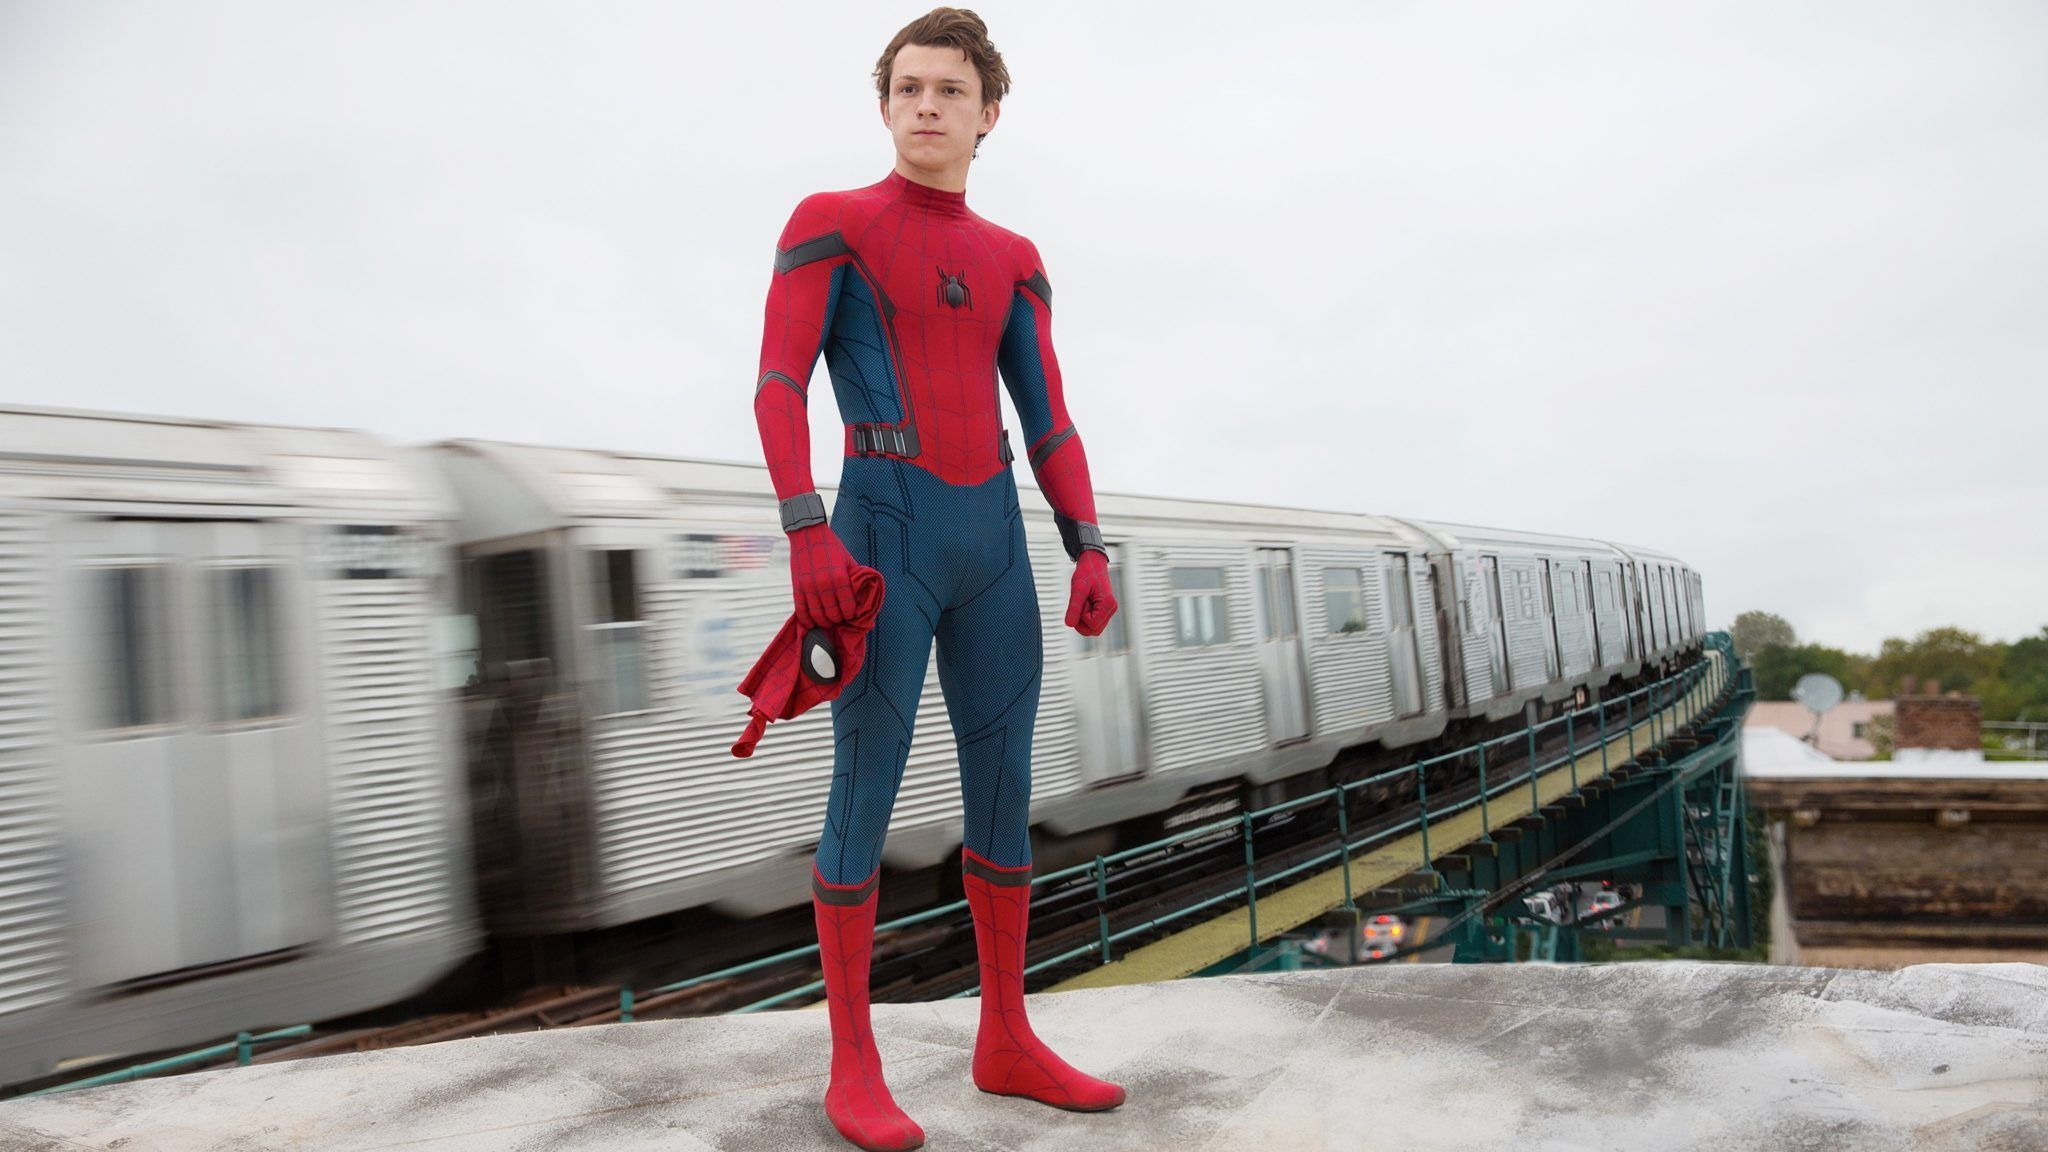 525db6ad2fa43fa4c273995d97168752 20 Things You Probably Never Knew About Tom Holland